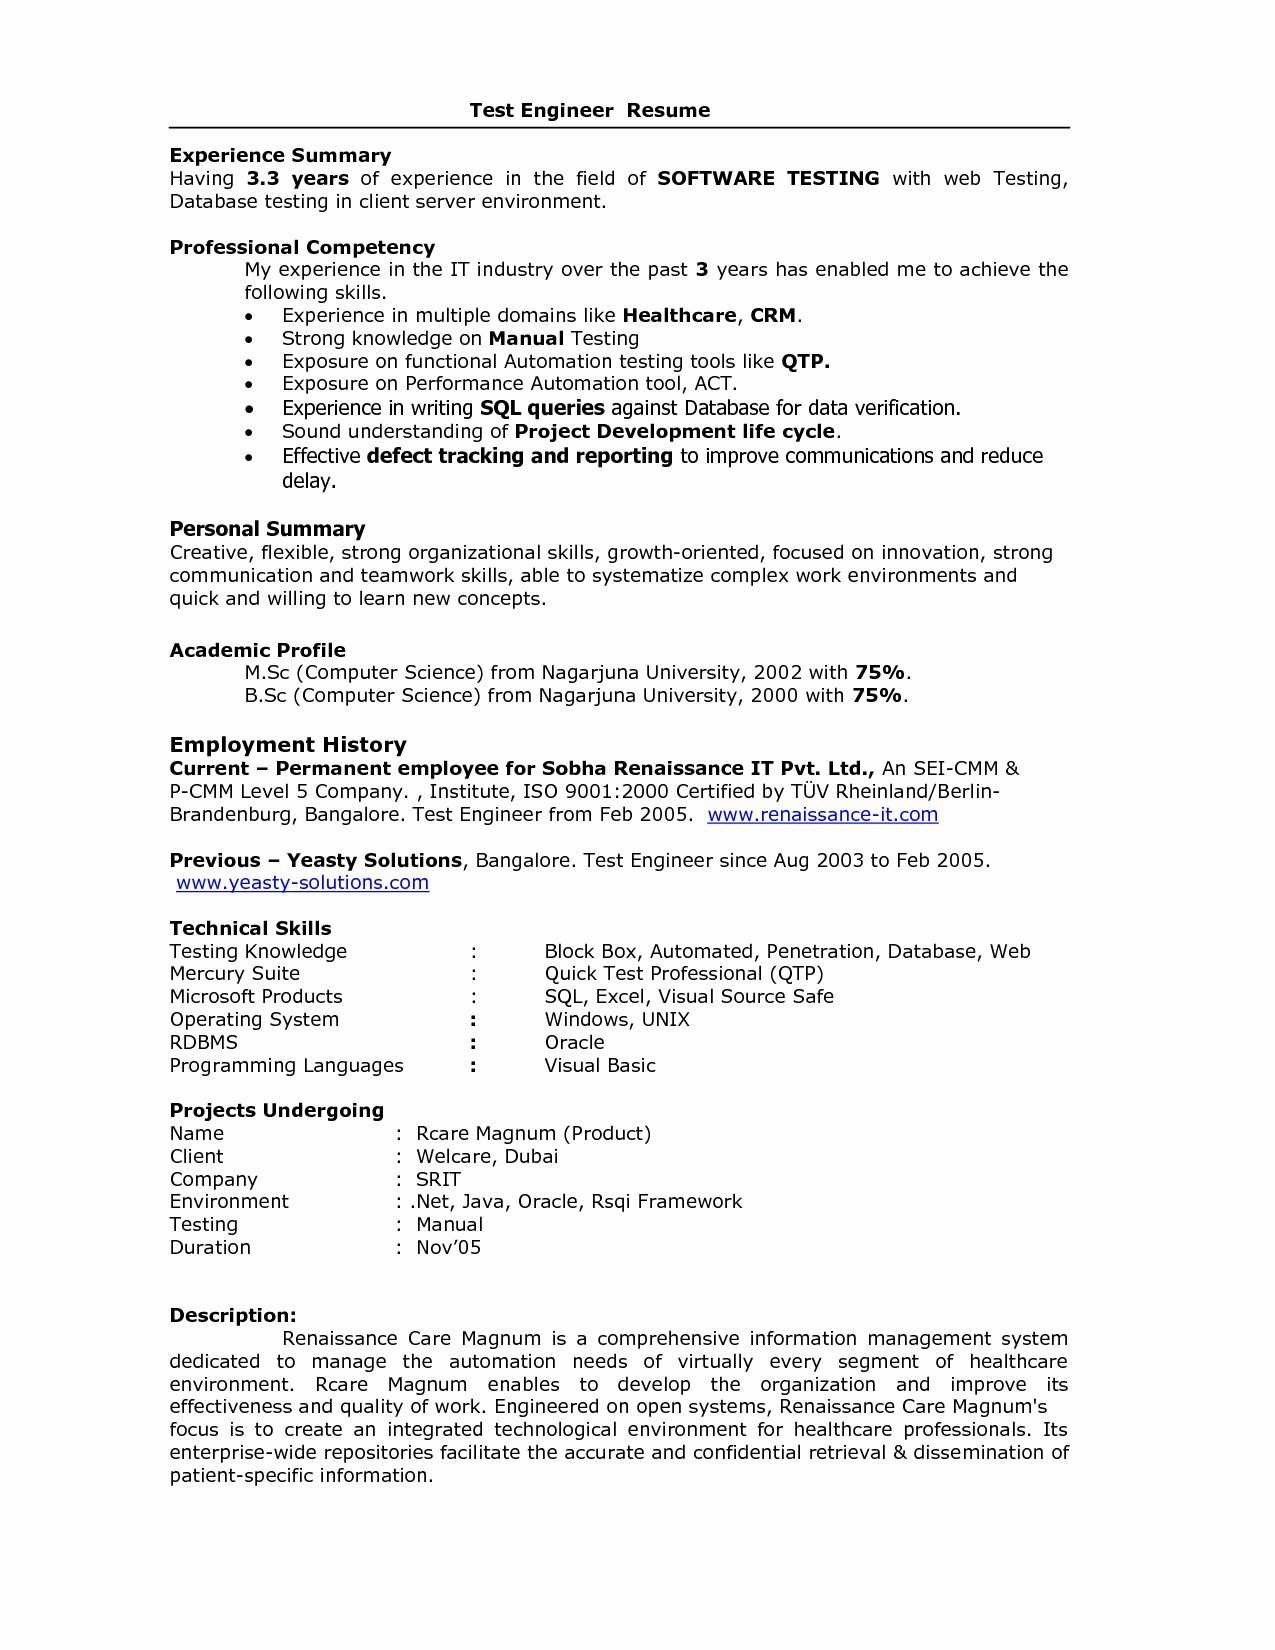 resume format for years experience in testing best sample software holder walmart skills Resume Sample Resume For 3 Years Experience